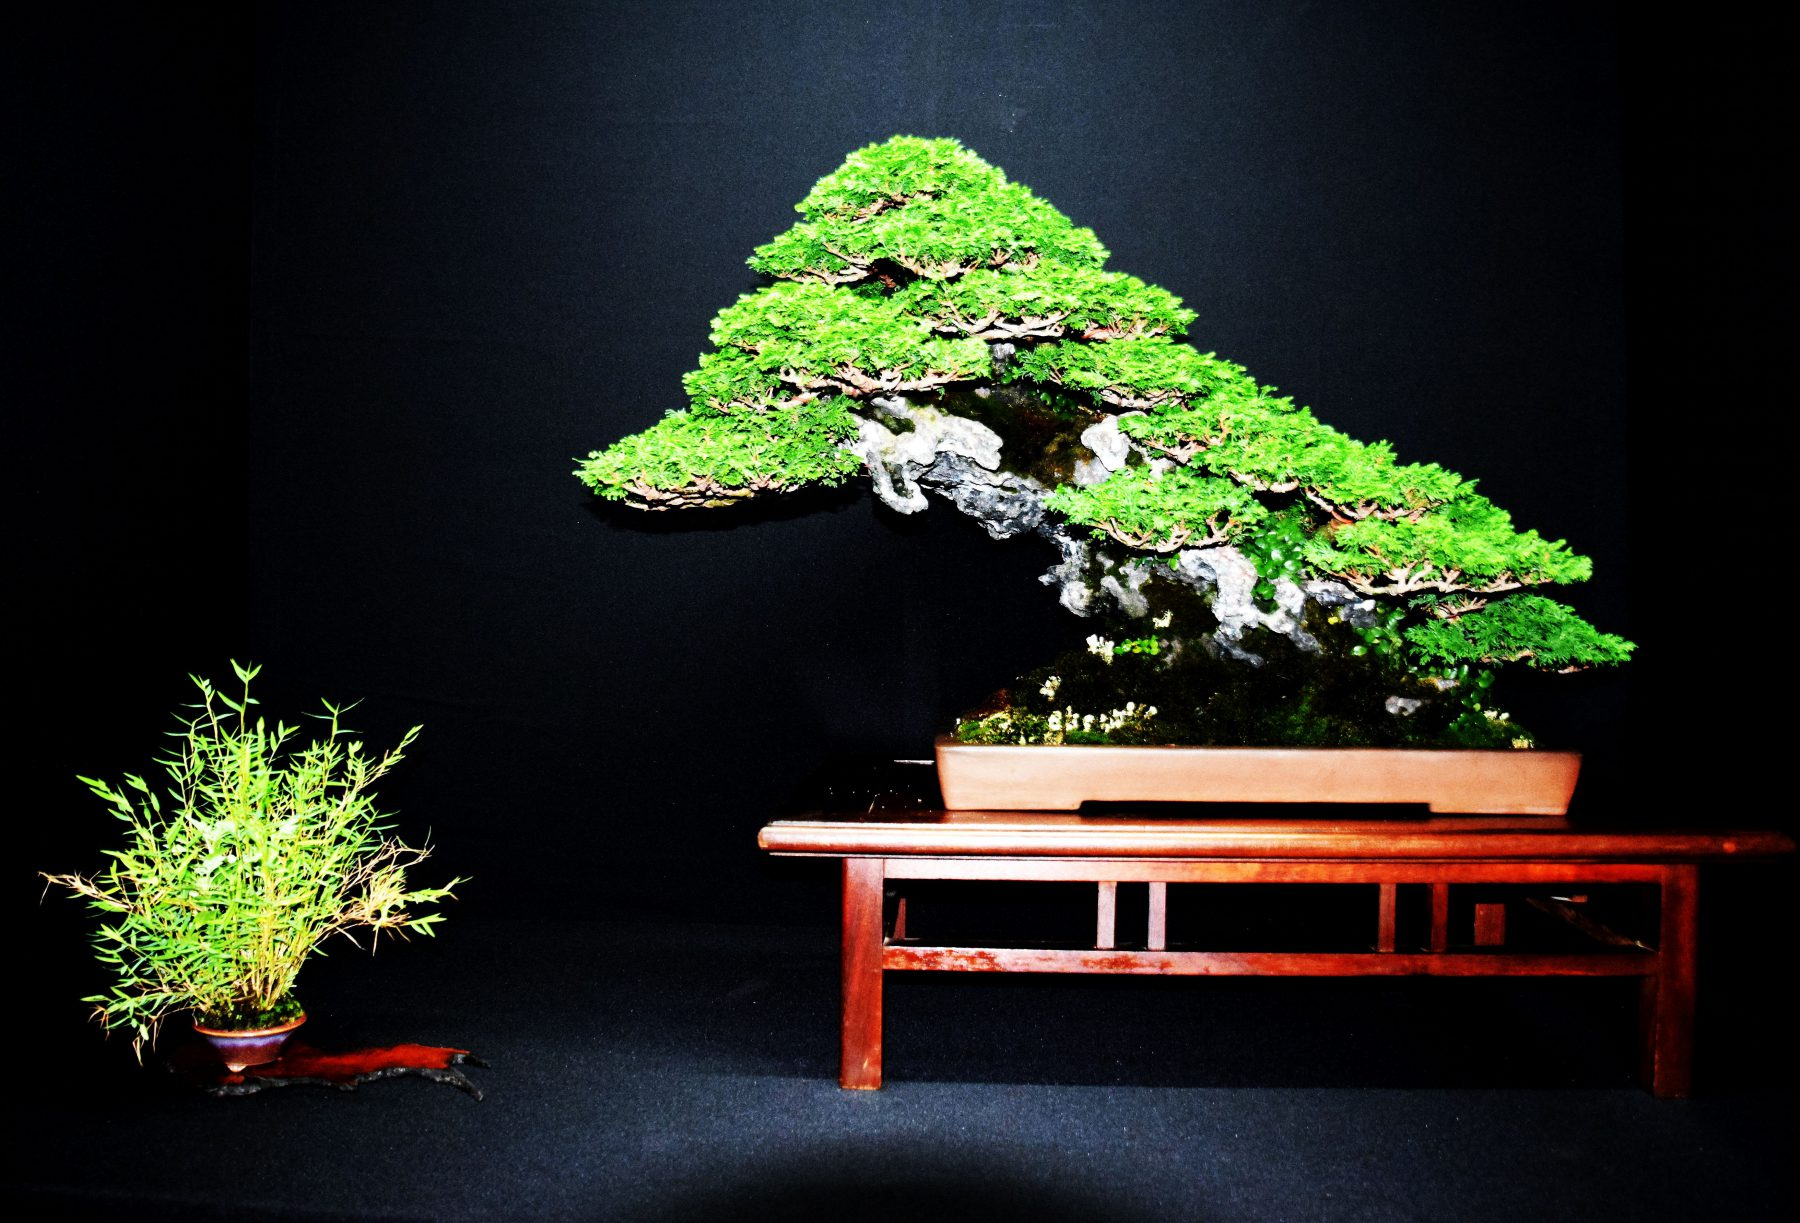 bonsai-museum-luis-vallejo-017